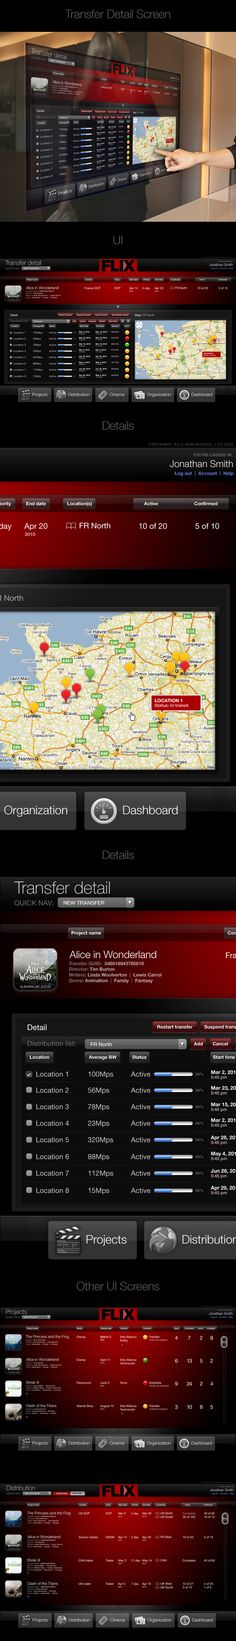 FLIX Touchscreen Interface by Thomas Moeller, via Behance